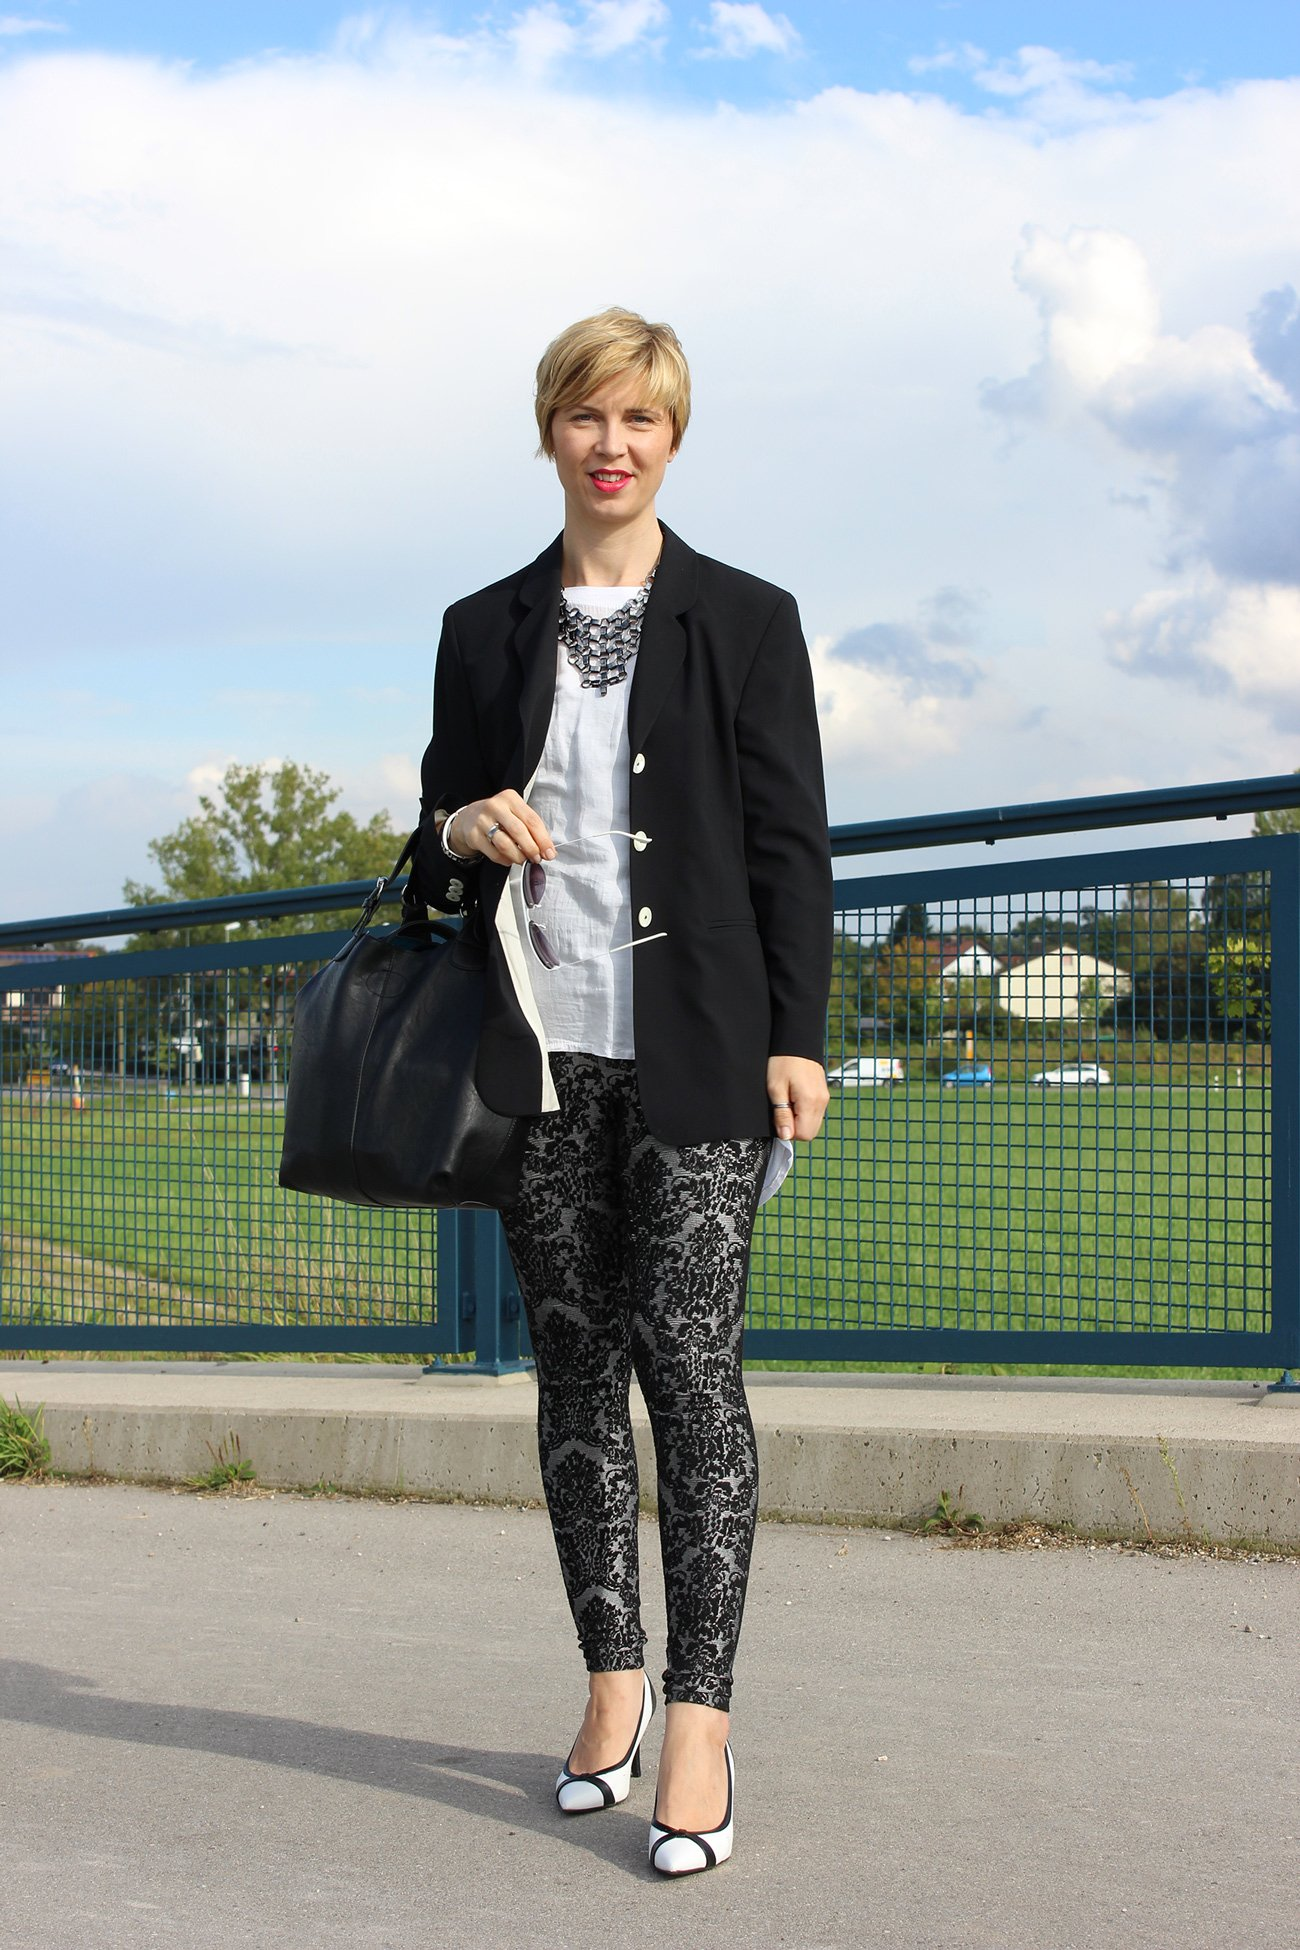 IMG_1550a_Only_blackandwhite_Legging_pumps_Deichmann